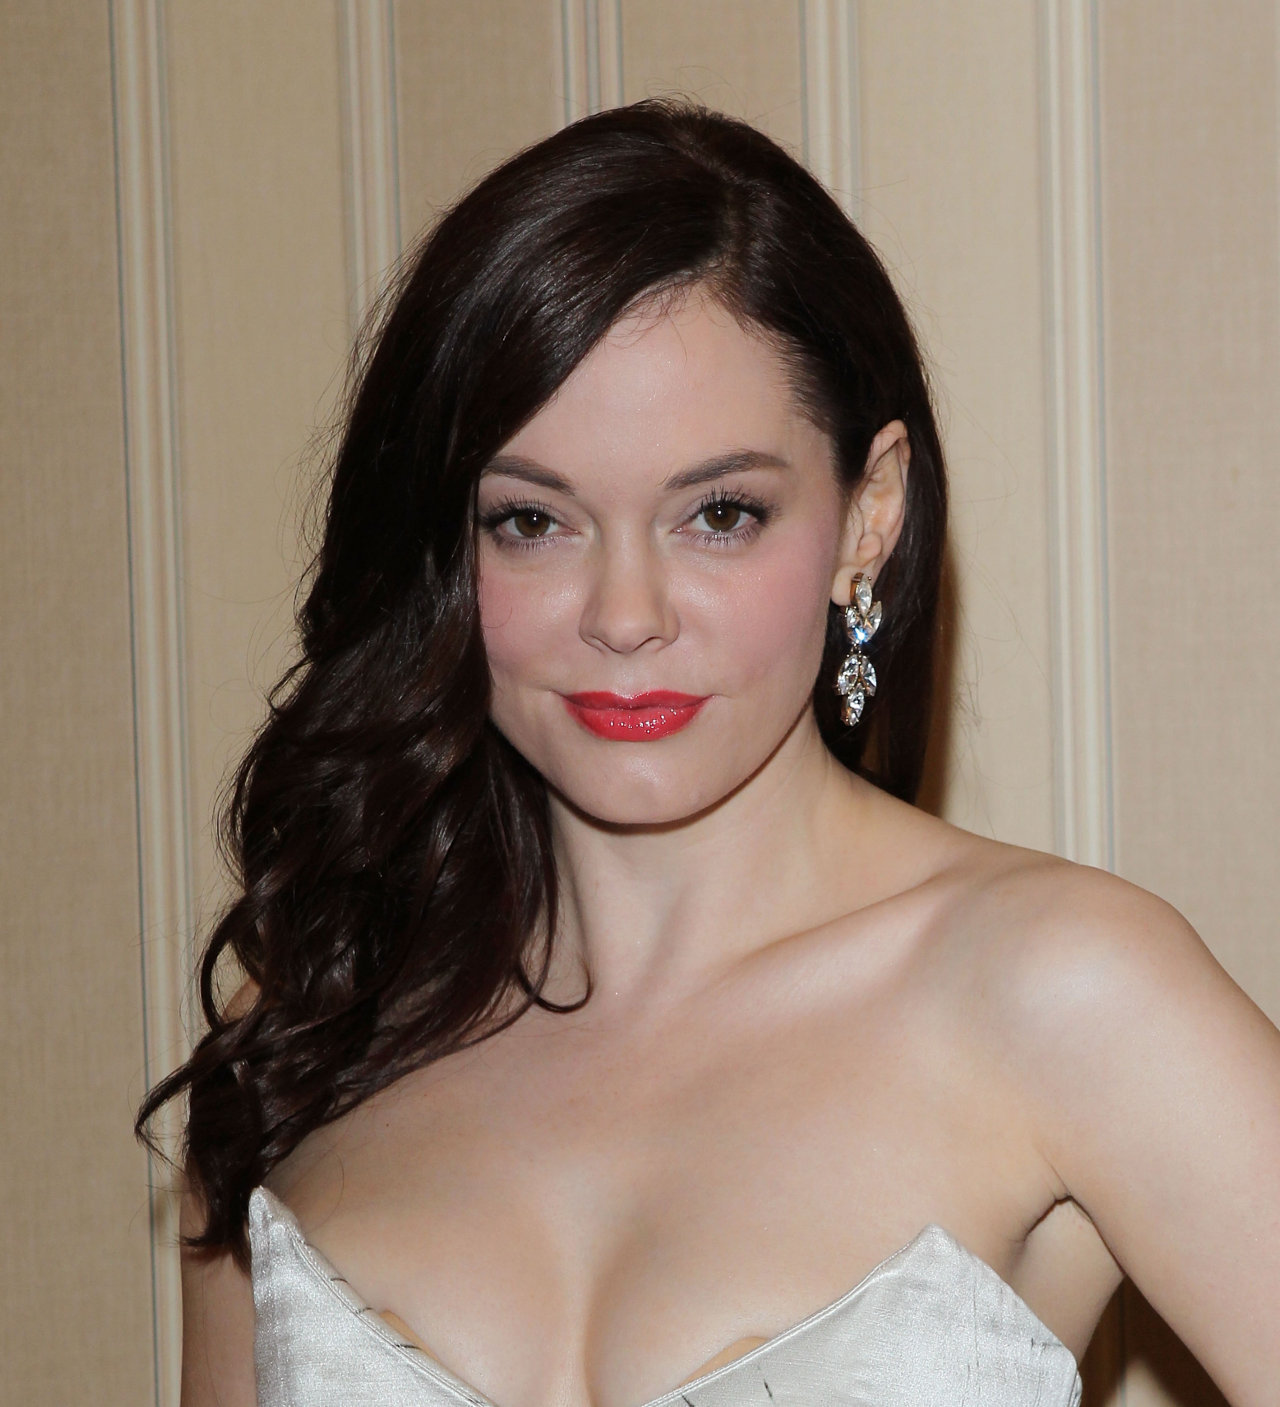 rose mcgowan pictures - photo #23